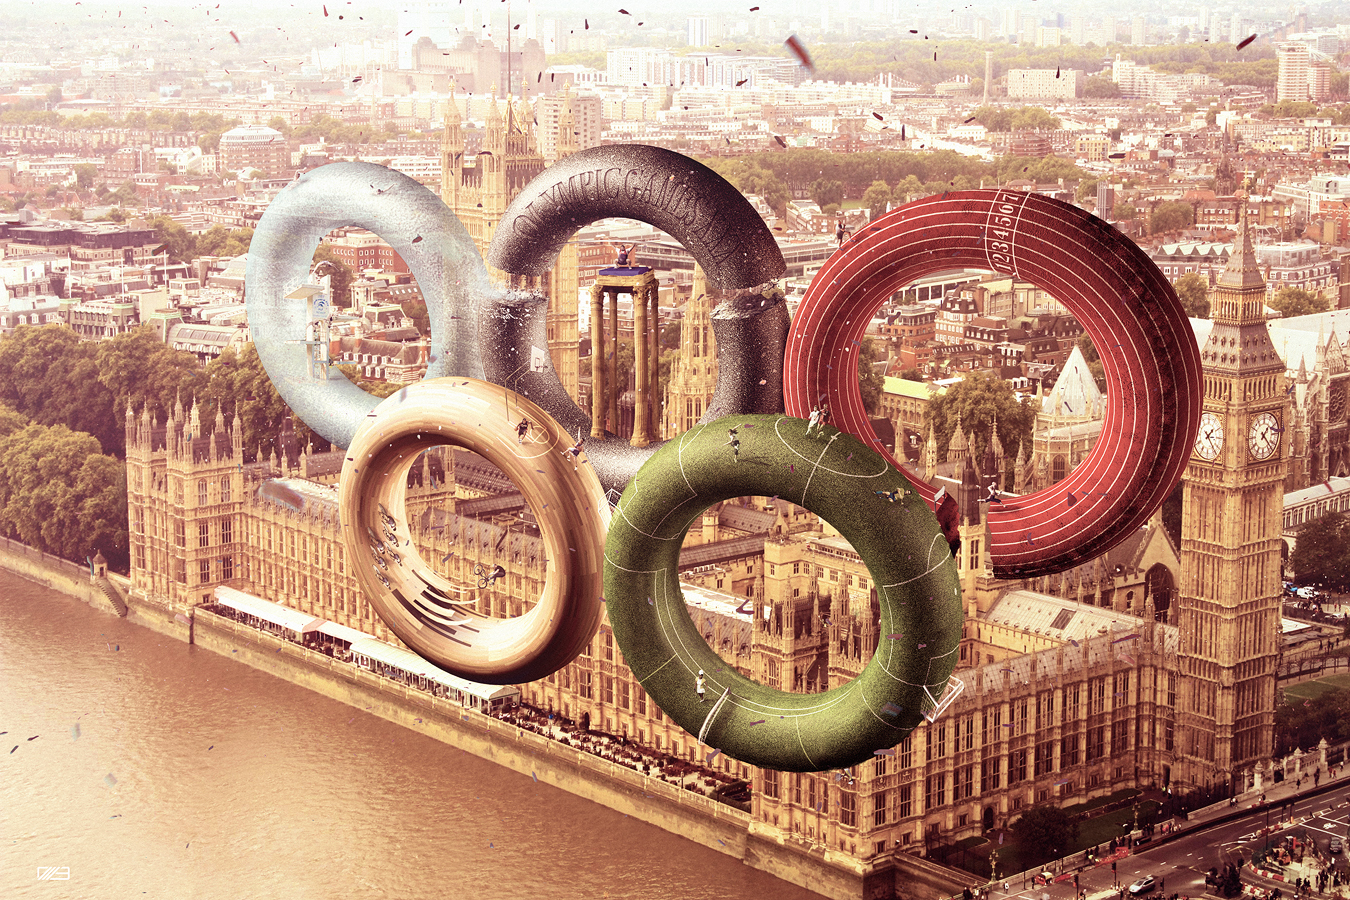 Olympic games 2012 by leox912